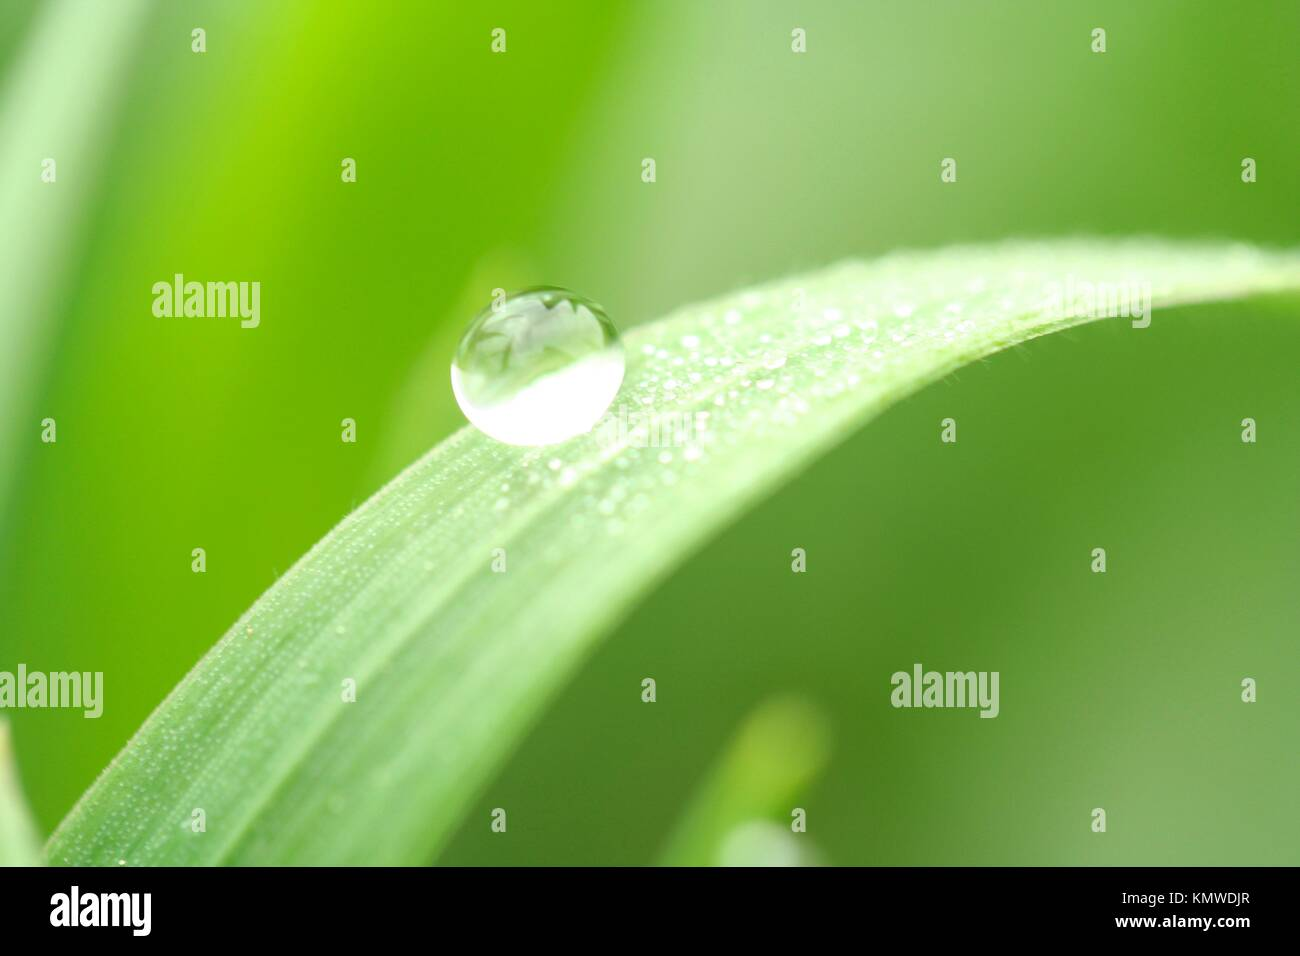 Droplet in leaf - Stock Image